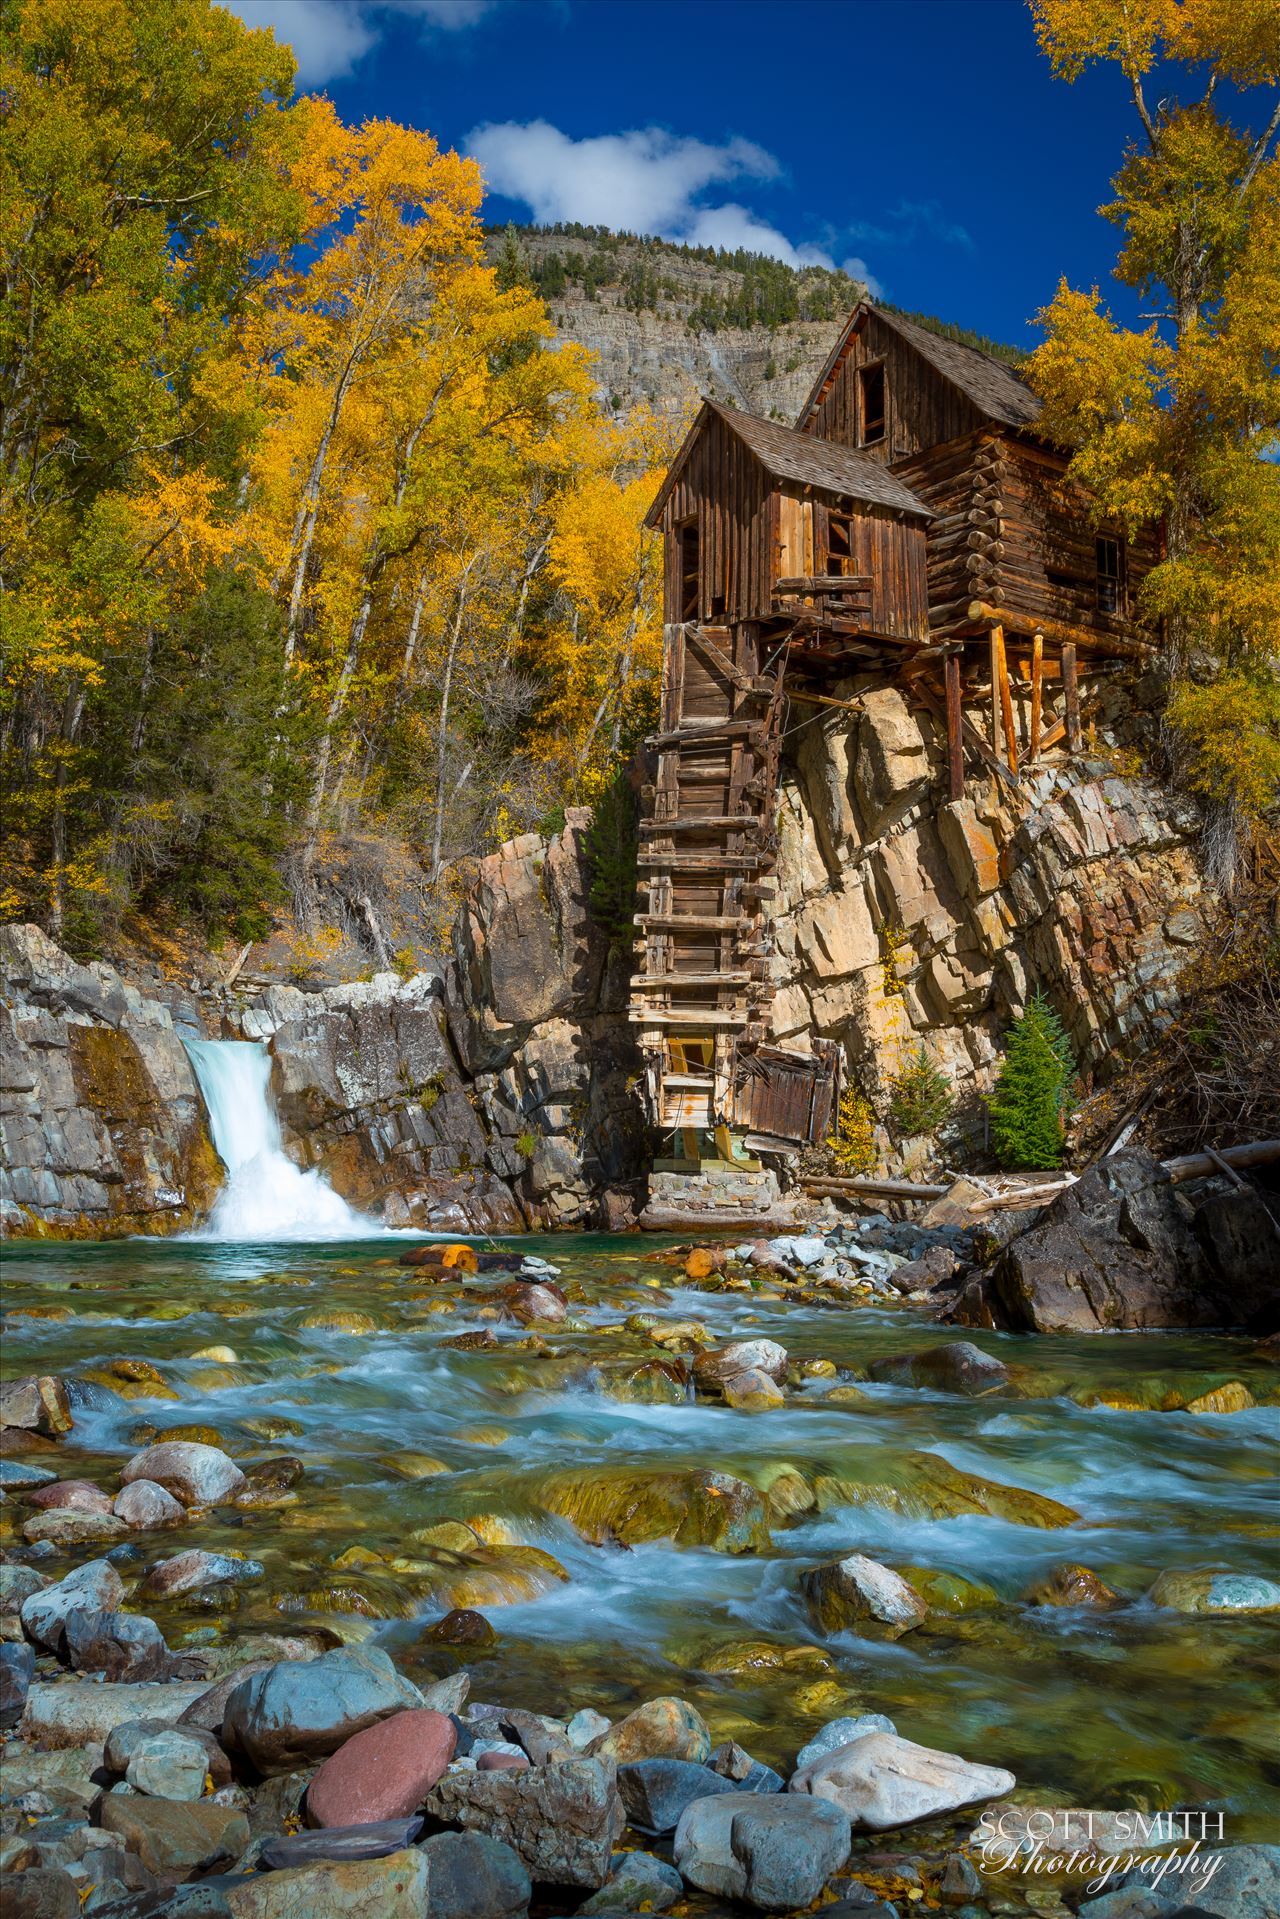 Crystal Mill, Colorado 08 - The Crystal Mill, or the Old Mill is an 1892 wooden powerhouse located on an outcrop above the Crystal River in Crystal, Colorado by D Scott Smith